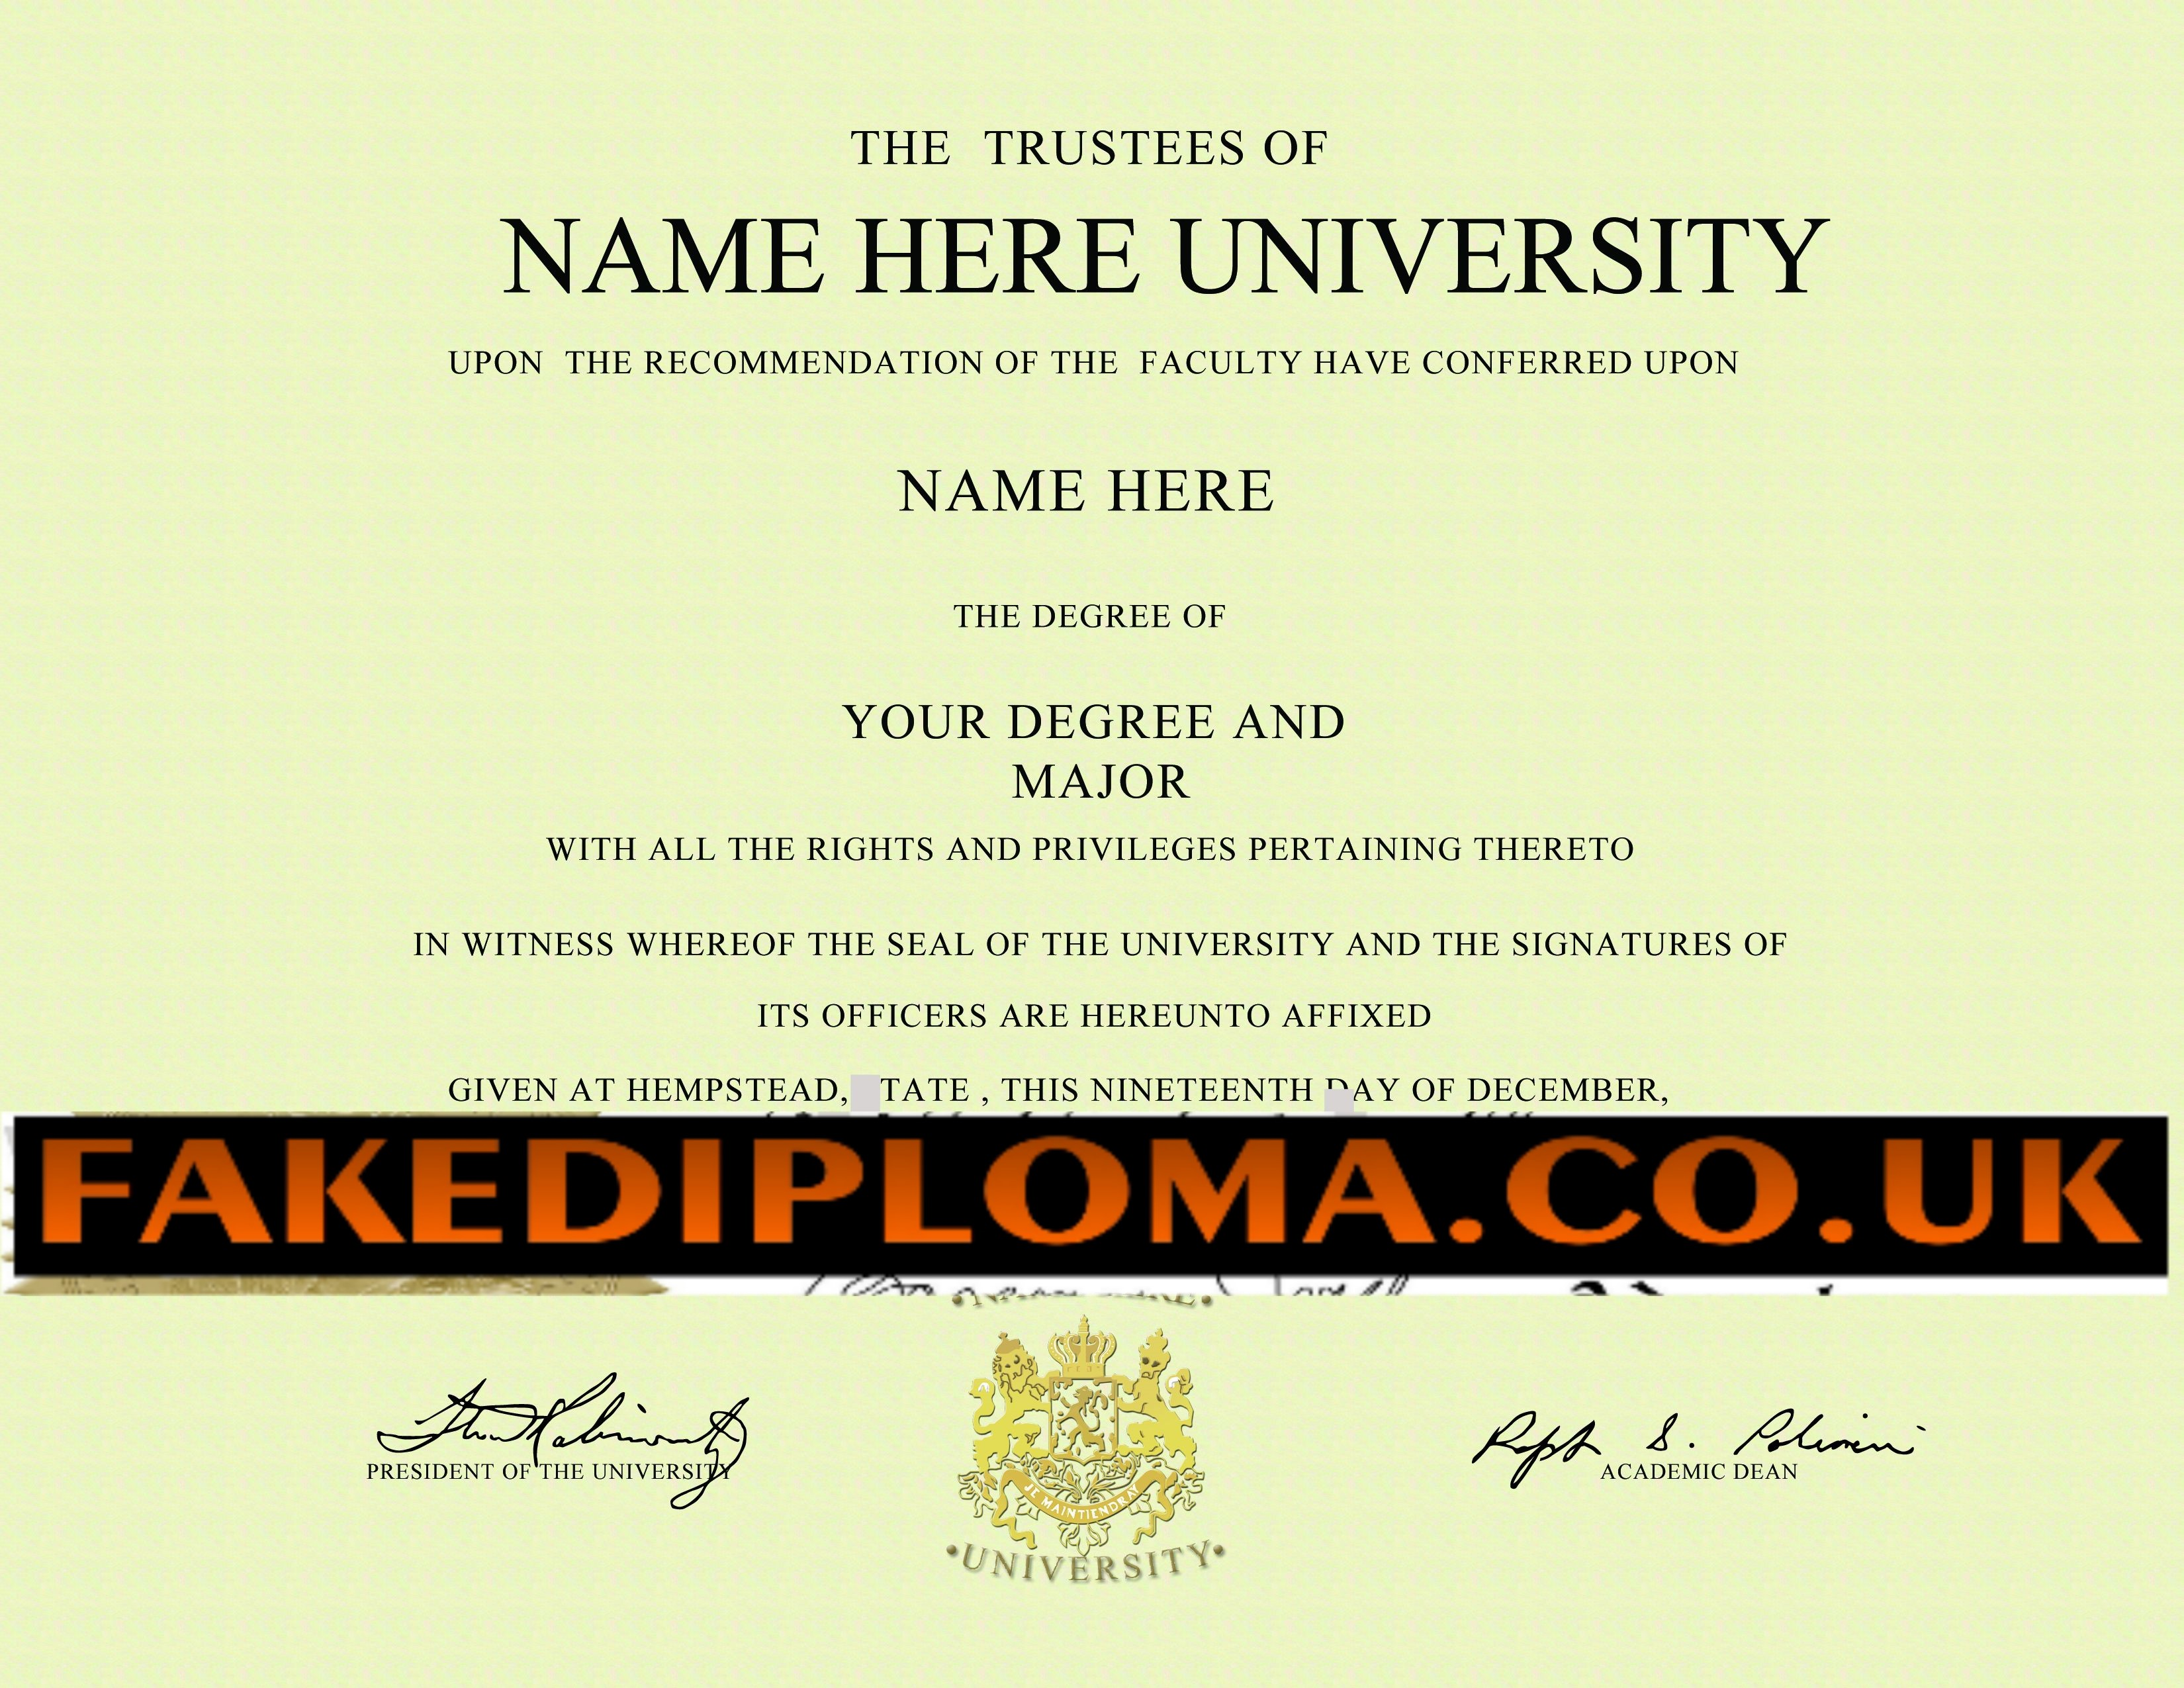 Original creations of any replica diplomas or degrees with more